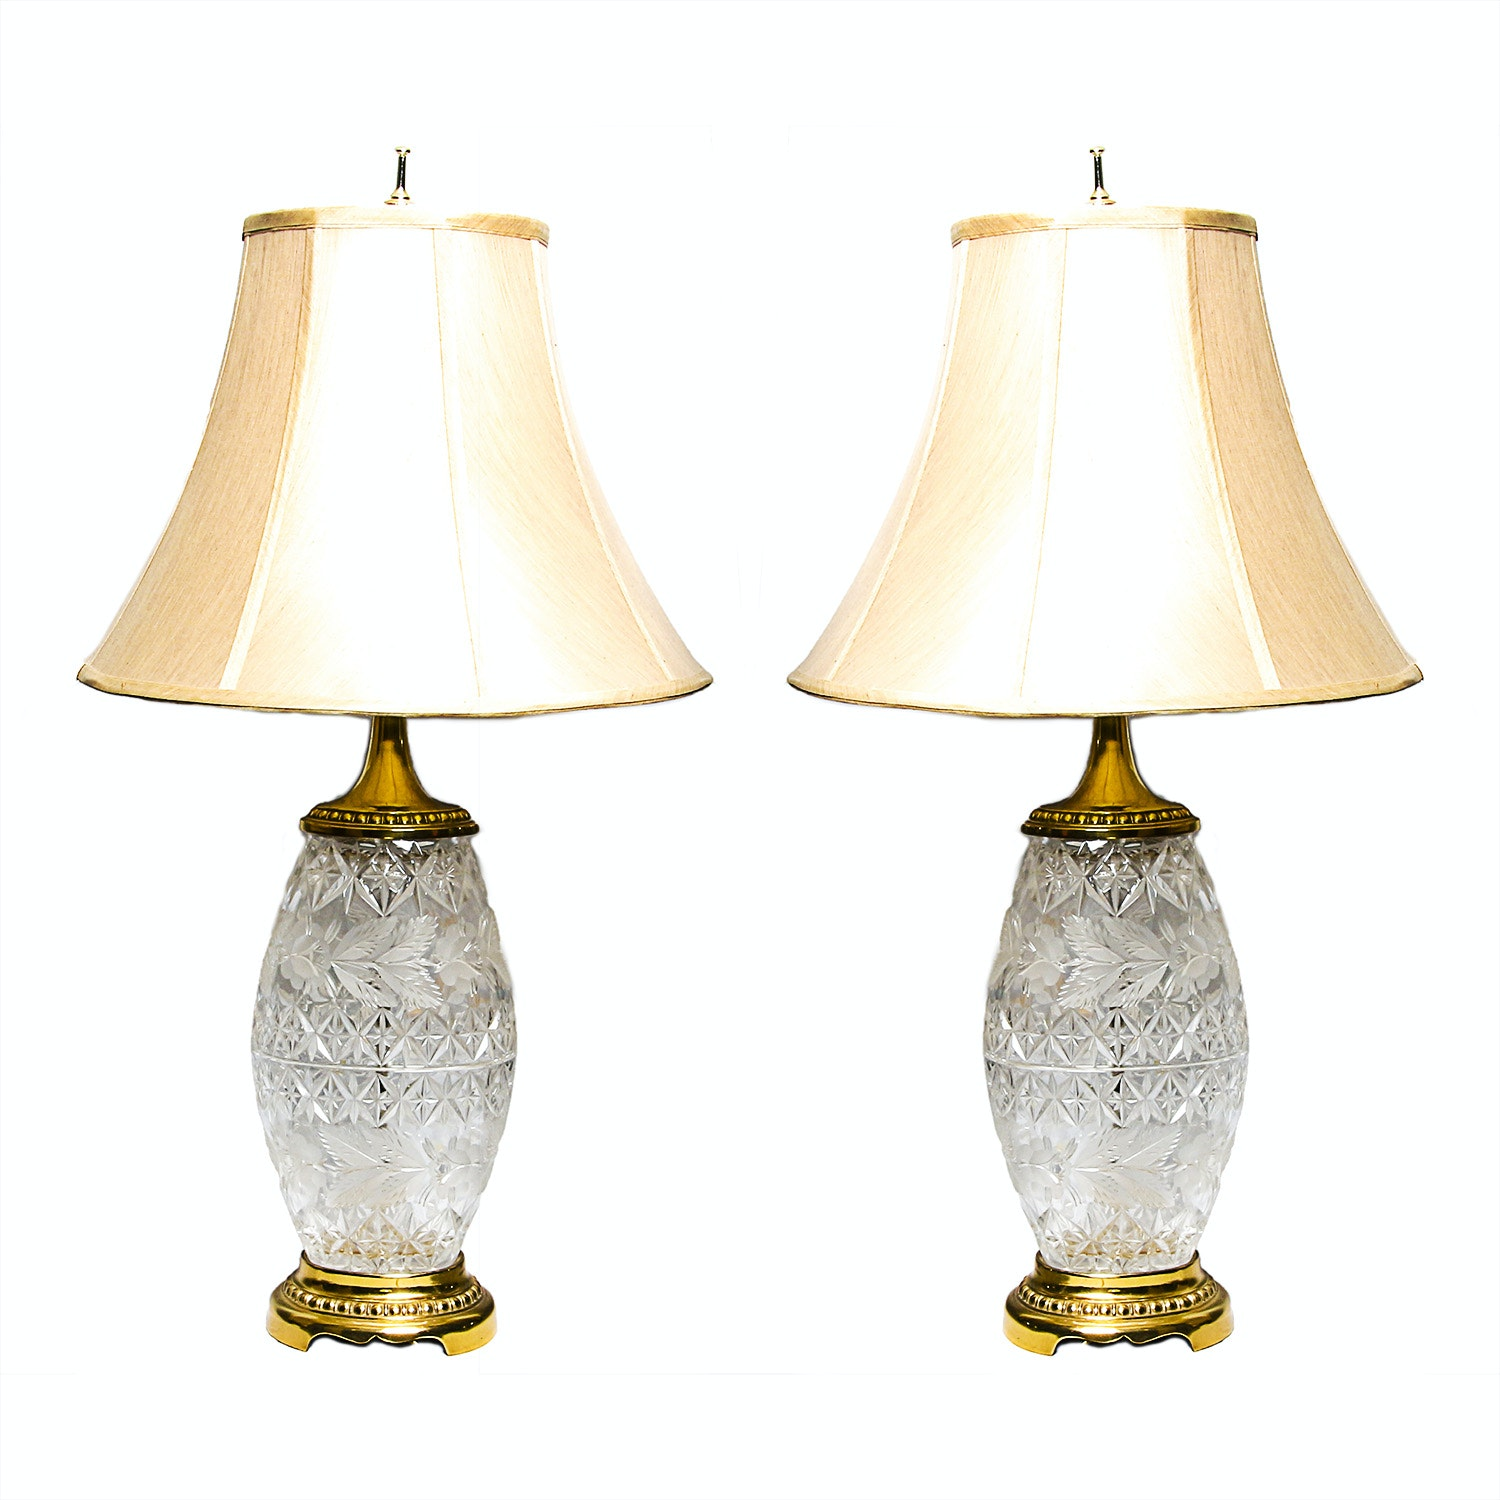 Pair of Cut Glass Table Lamps